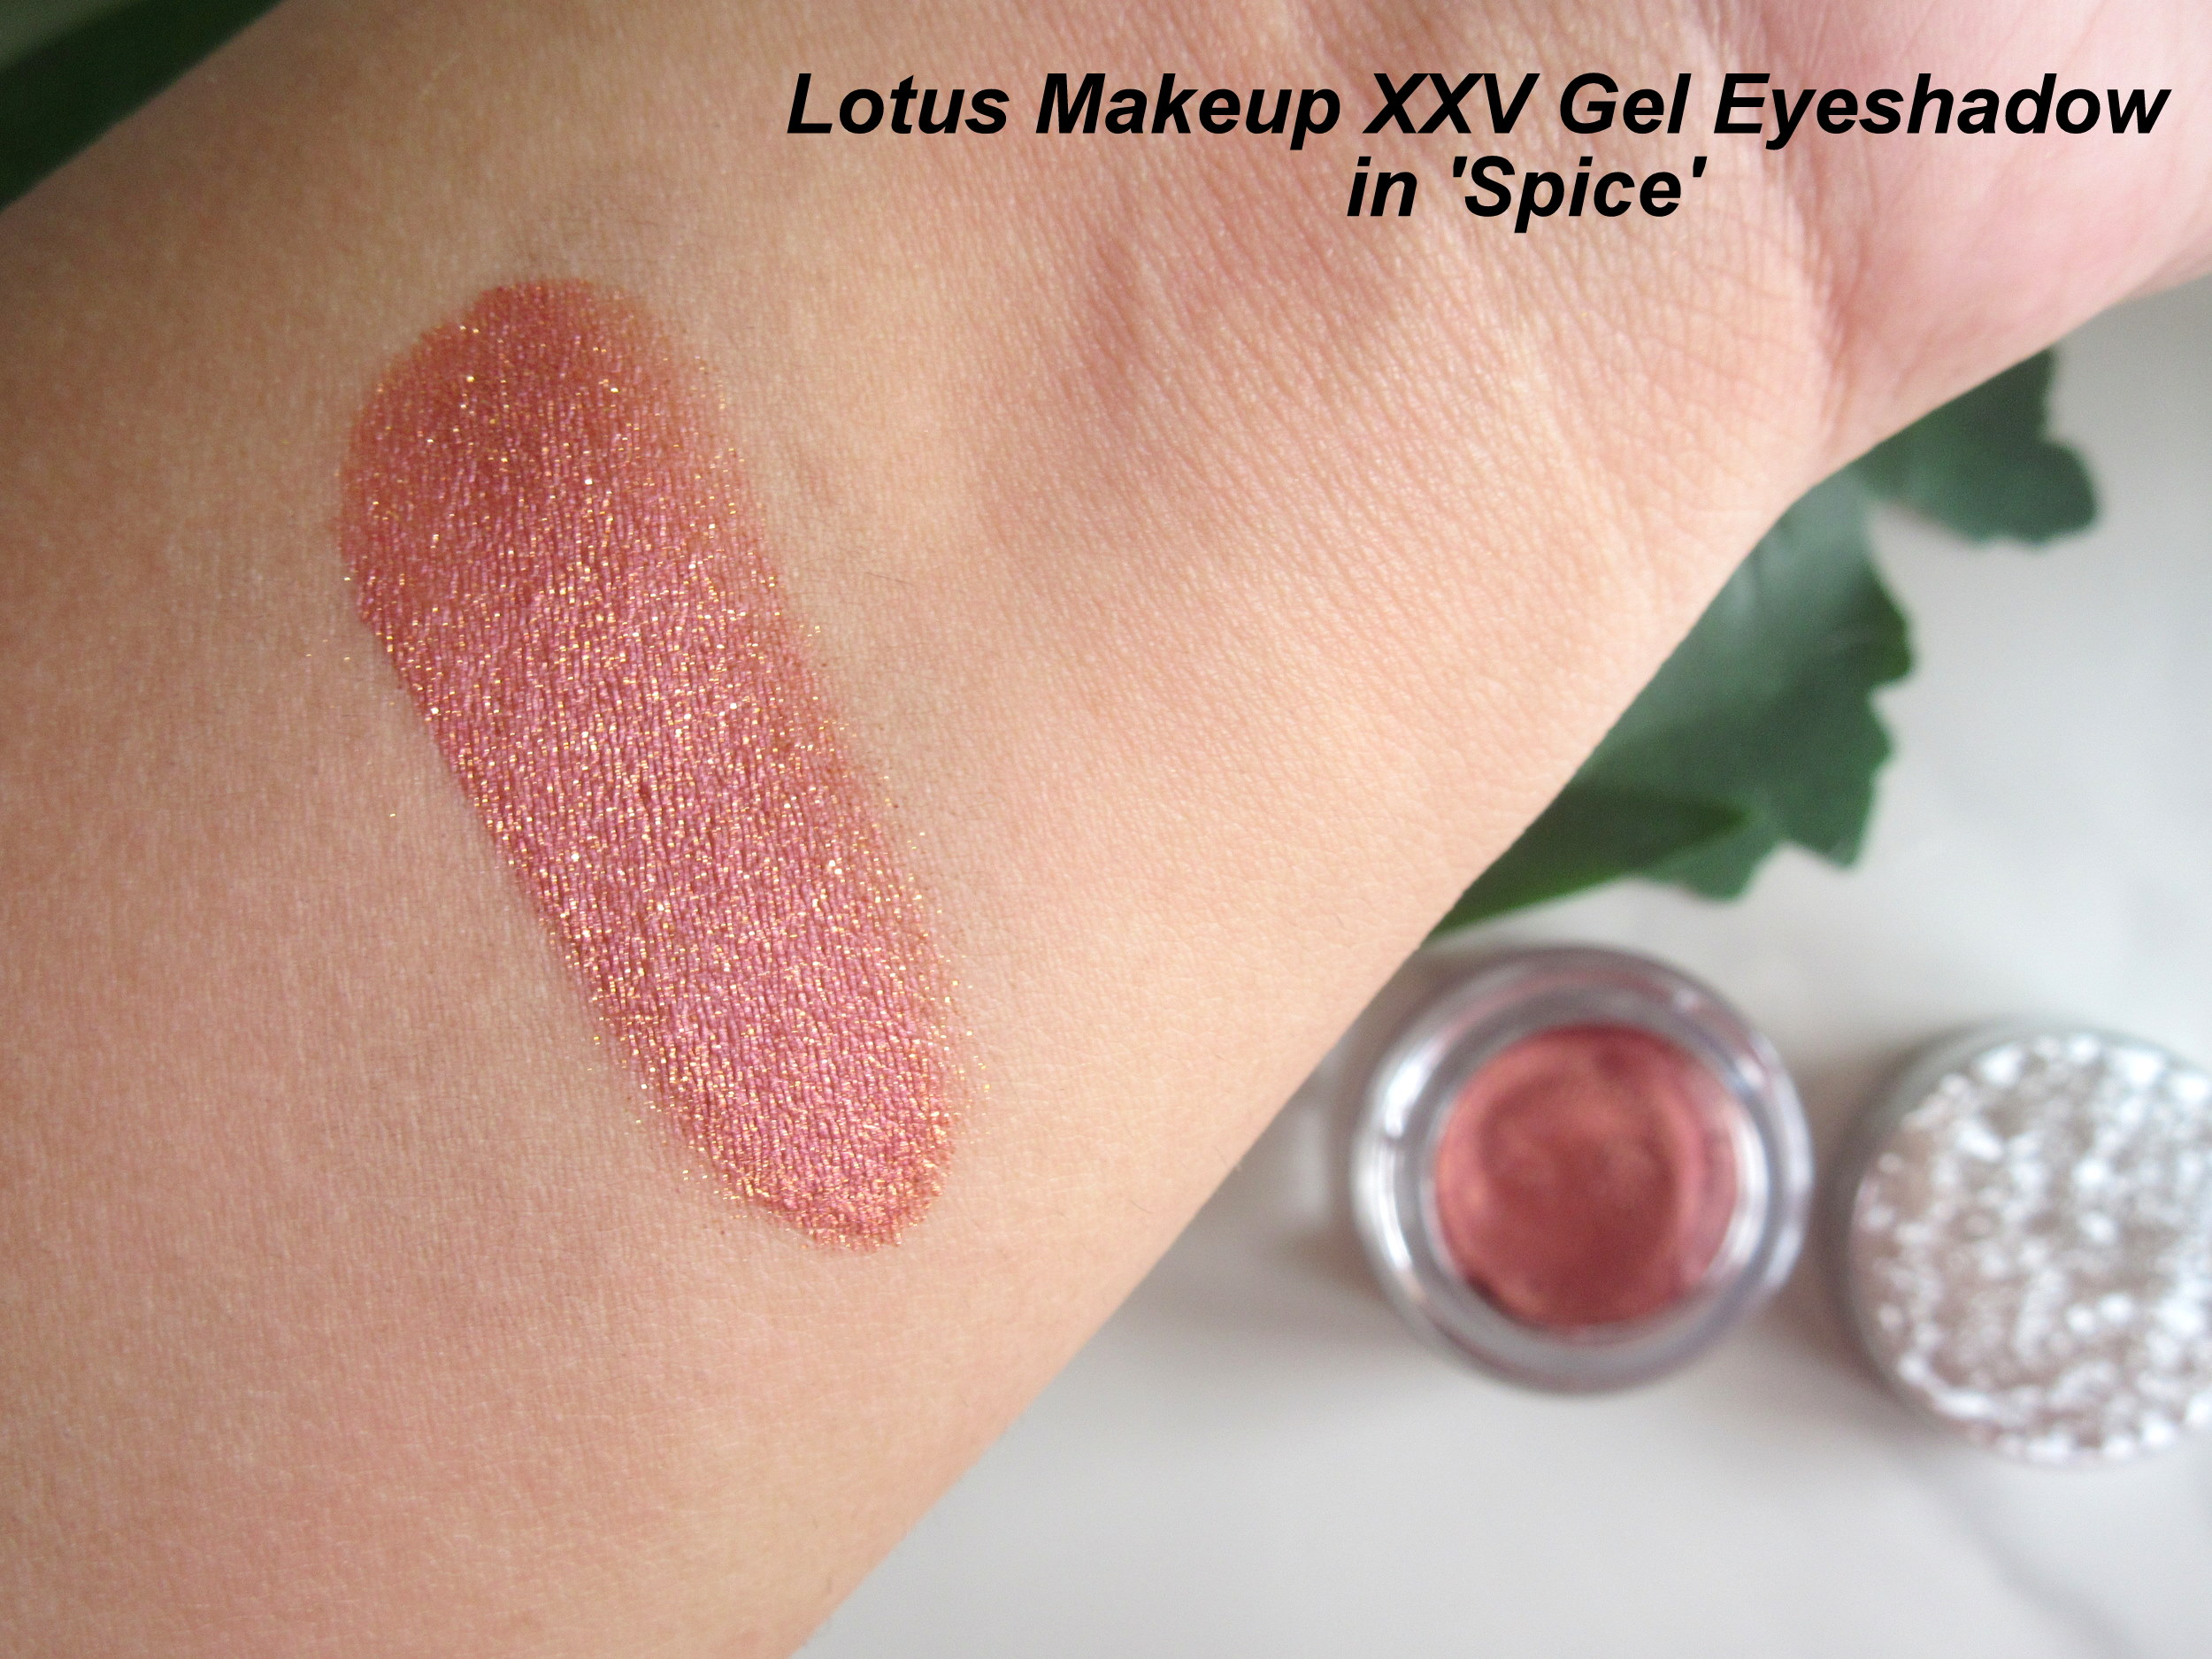 lotus xxv gel eyeshadow spice